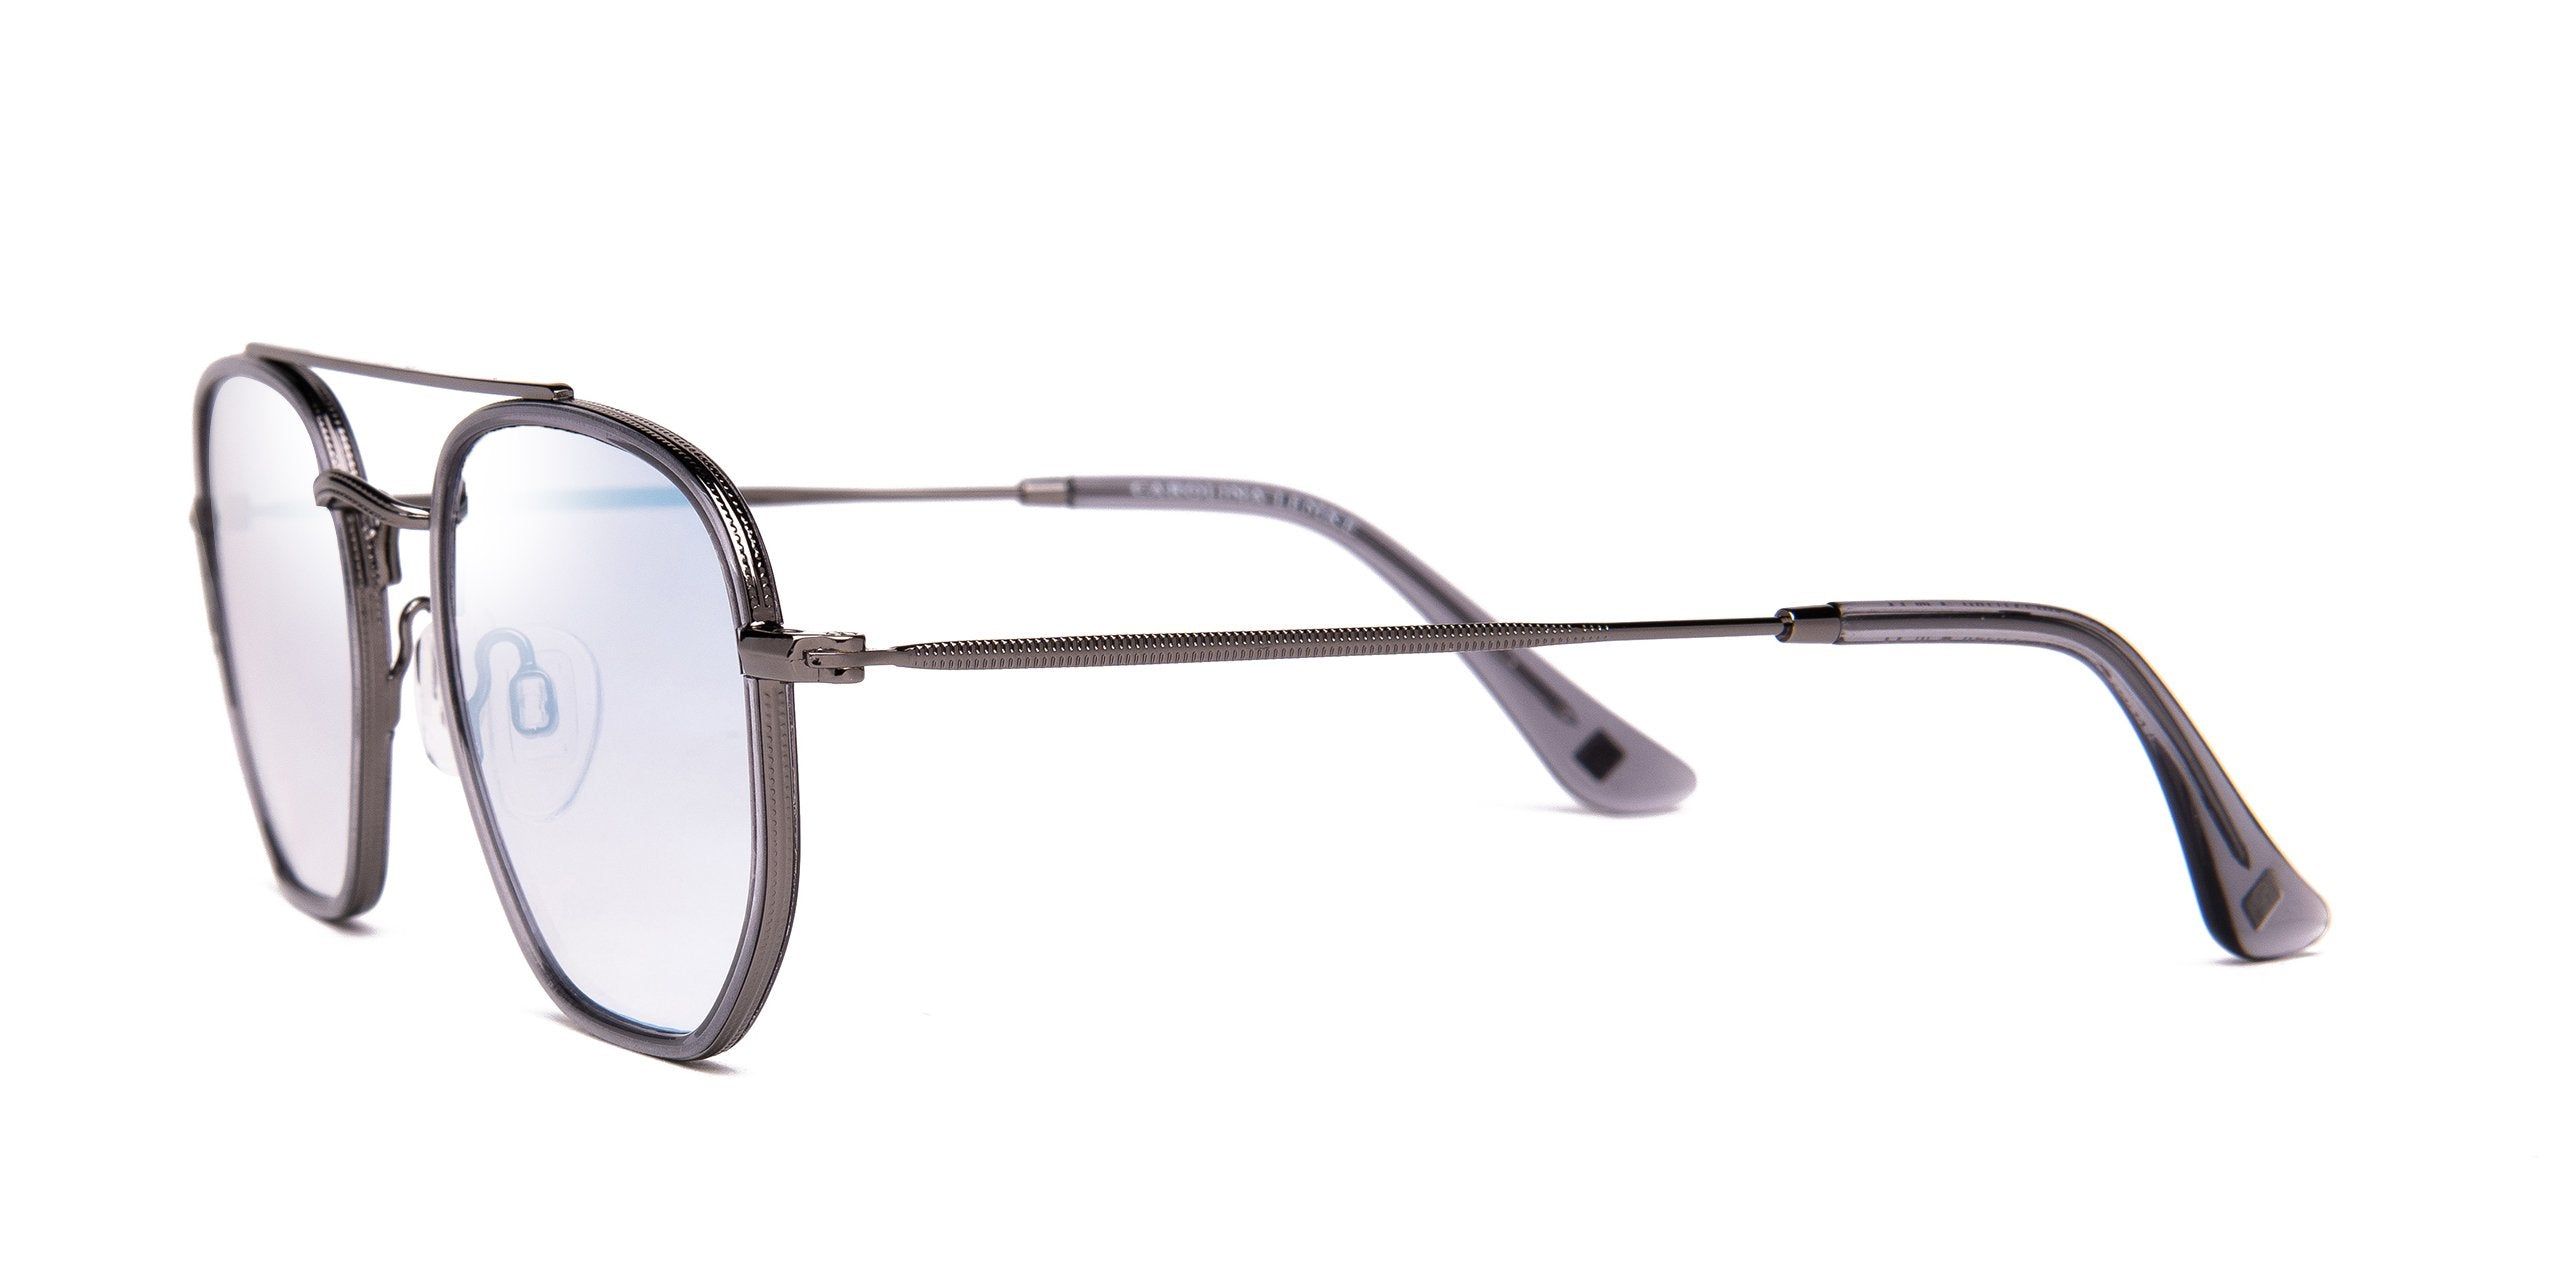 FRAME Transparent Grey LENS Silver Mirror